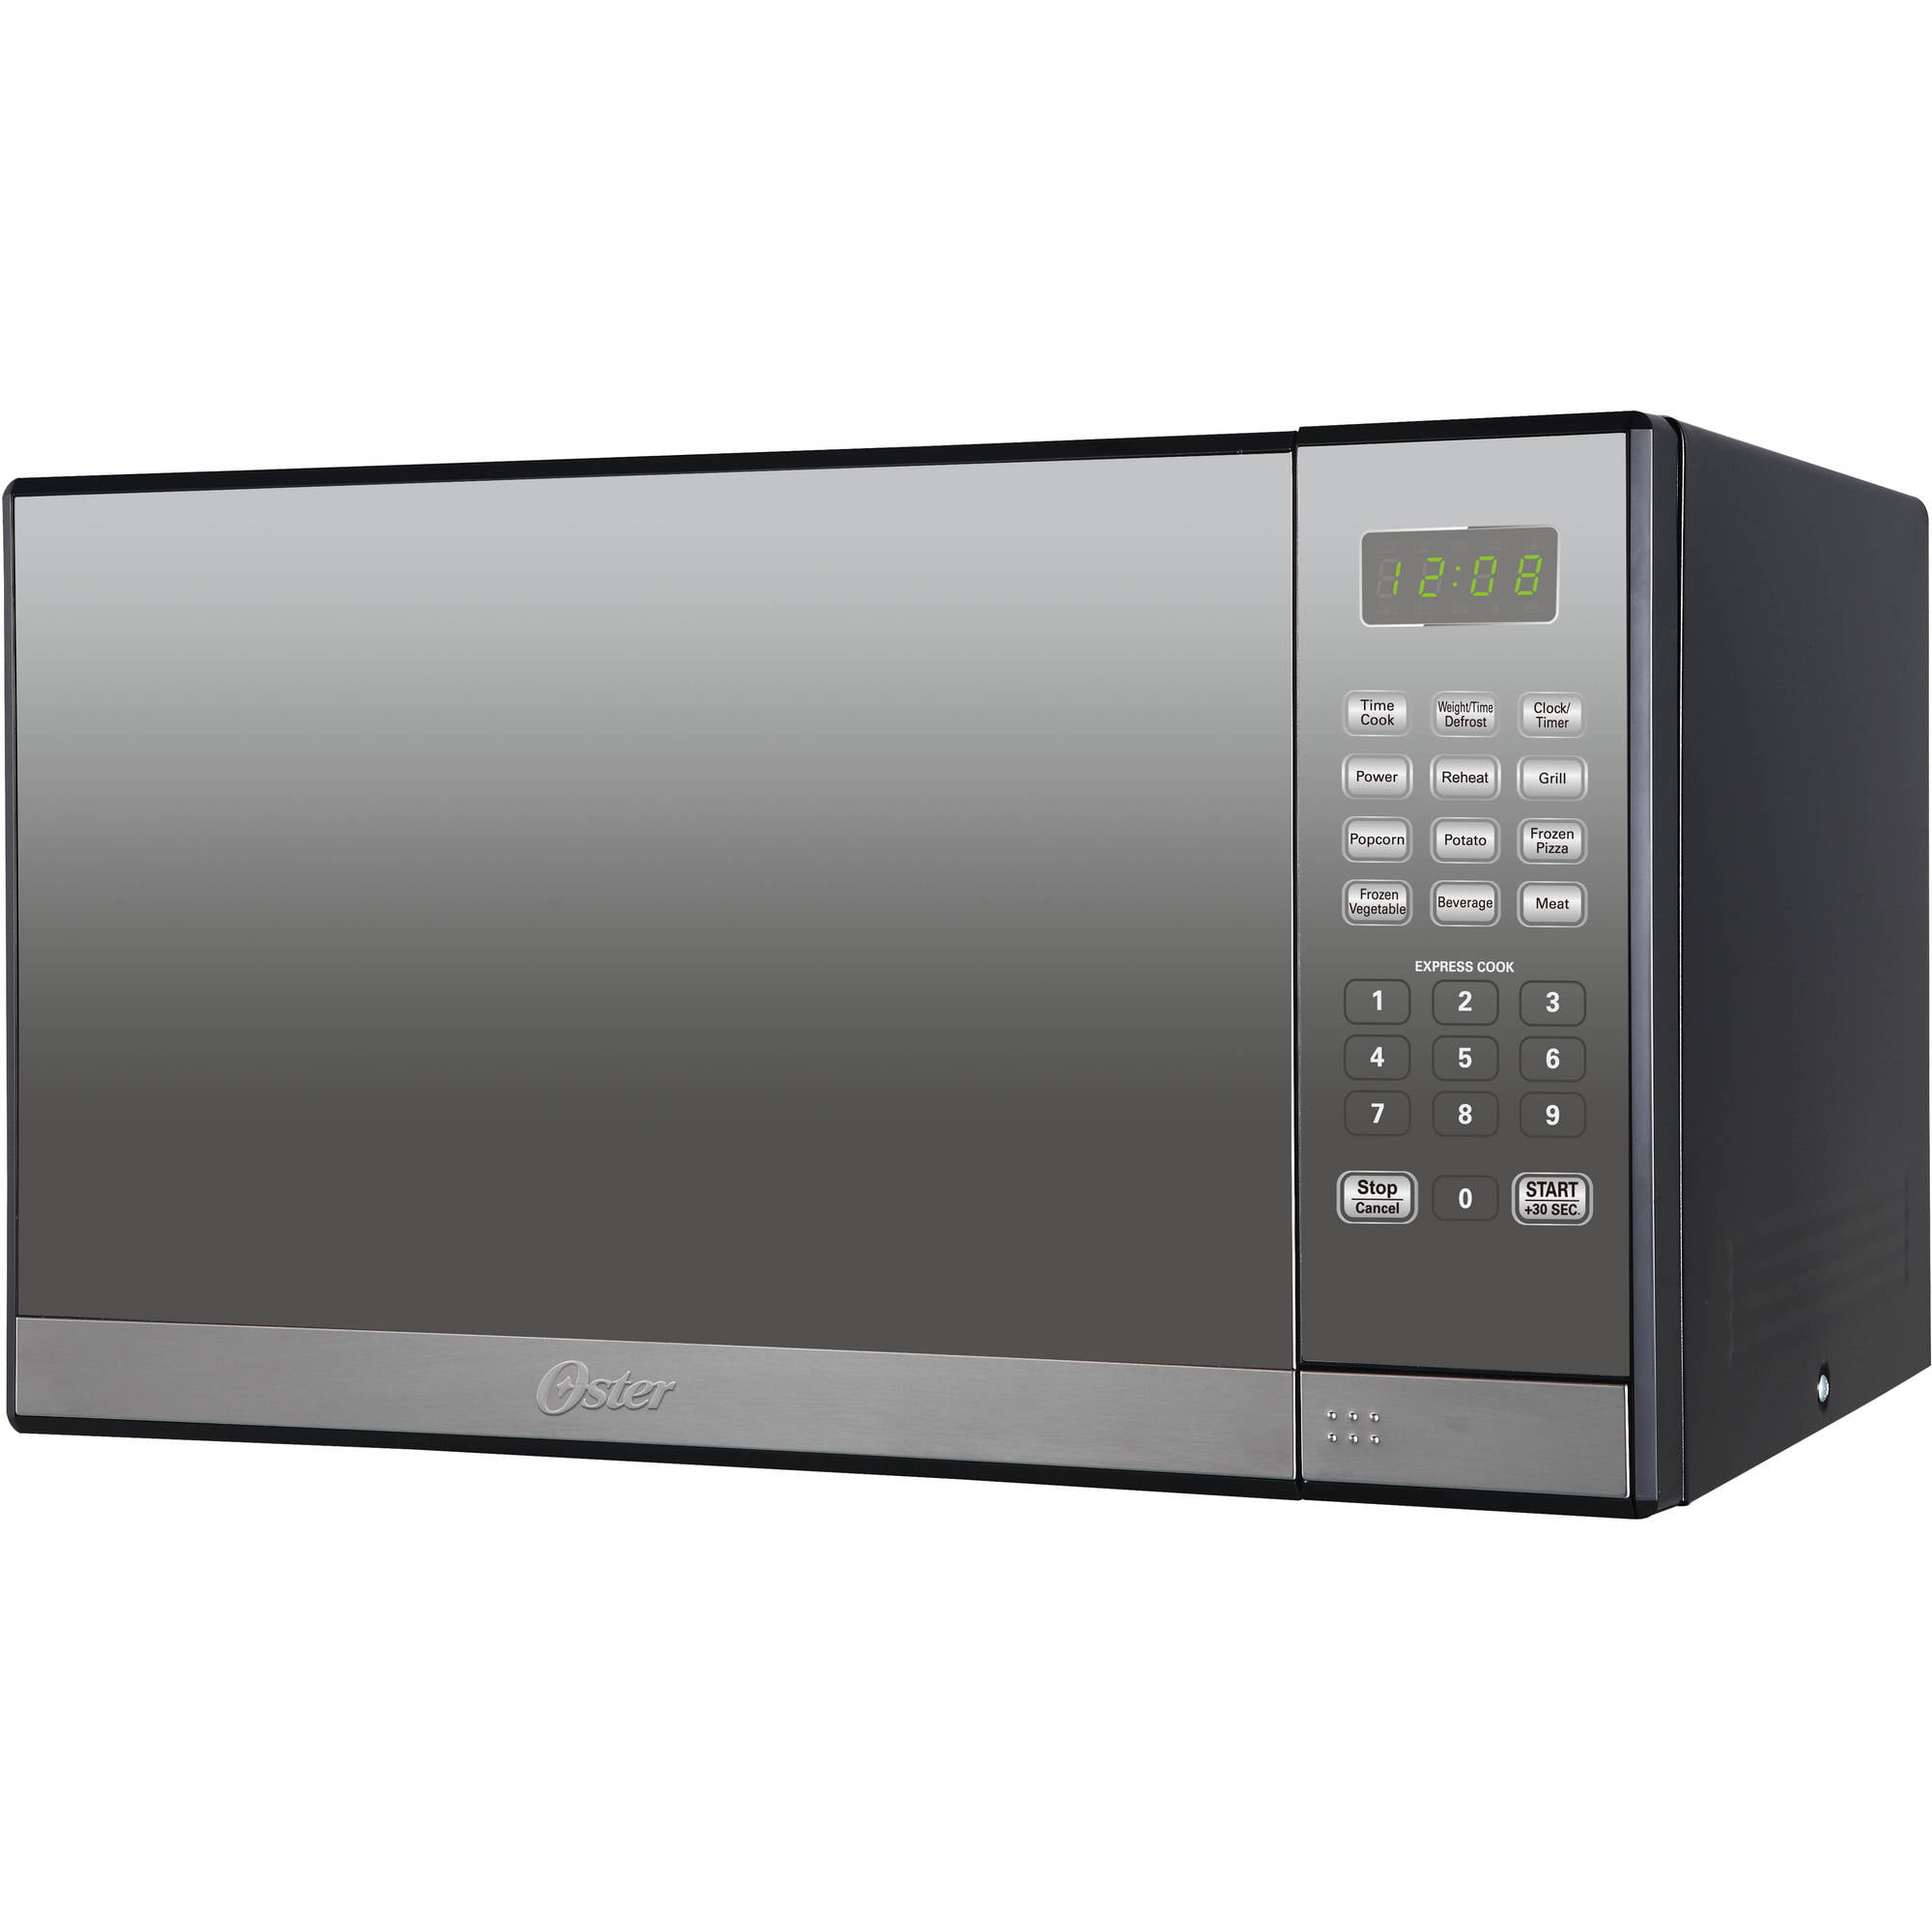 oster 1 3 cu ft microwave oven with grill stainless steel with rh walmart com Oster Om1201e0vg Manual oster microwave oven manual 1450